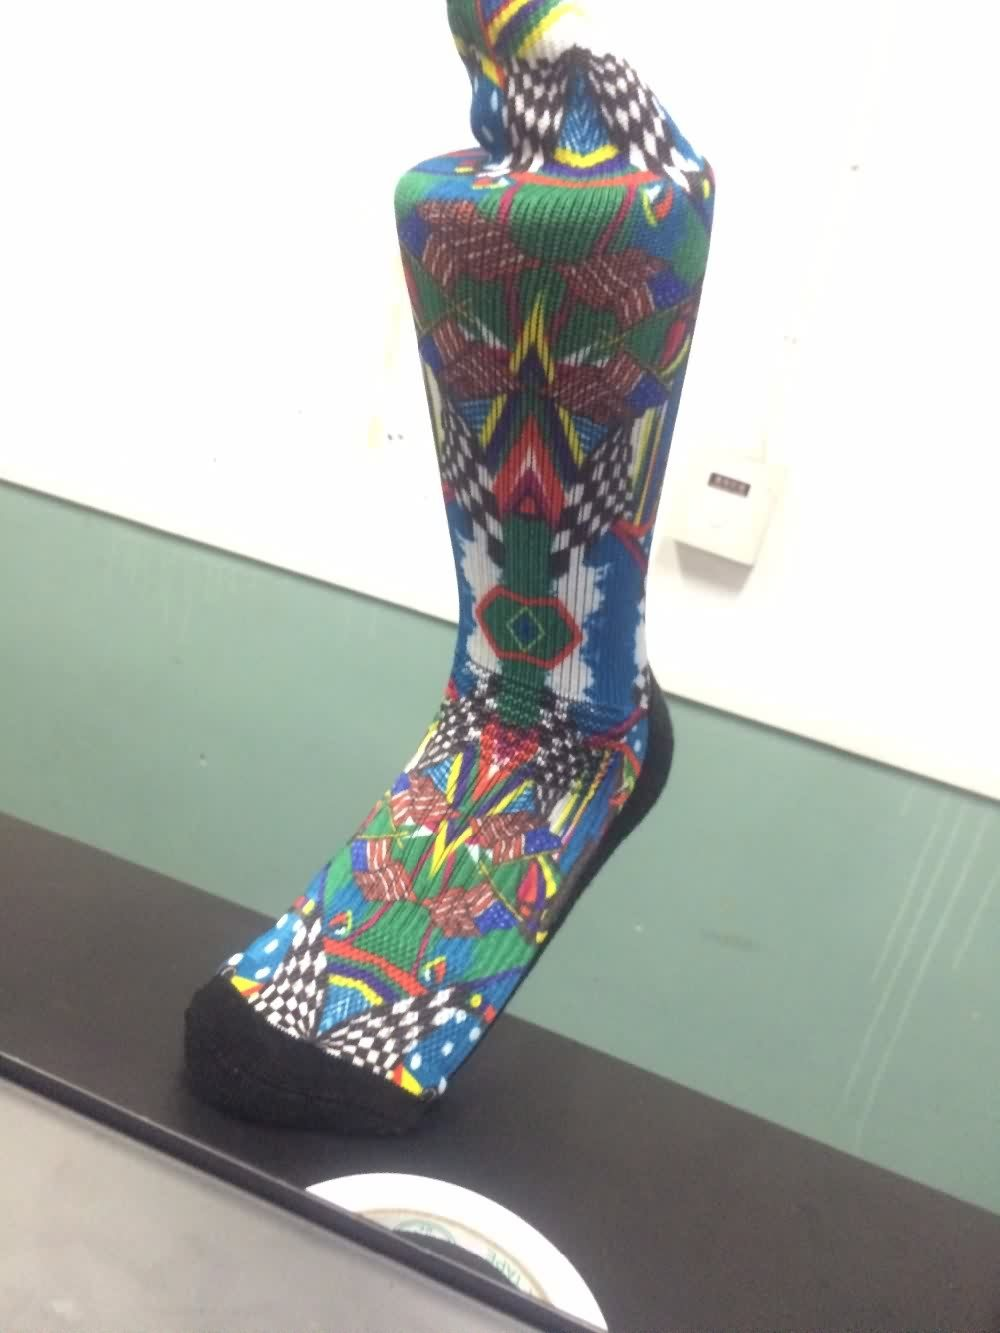 New Fashion Design for Customize sports socks printer, rotary printing machine for sale to Vancouver Factory